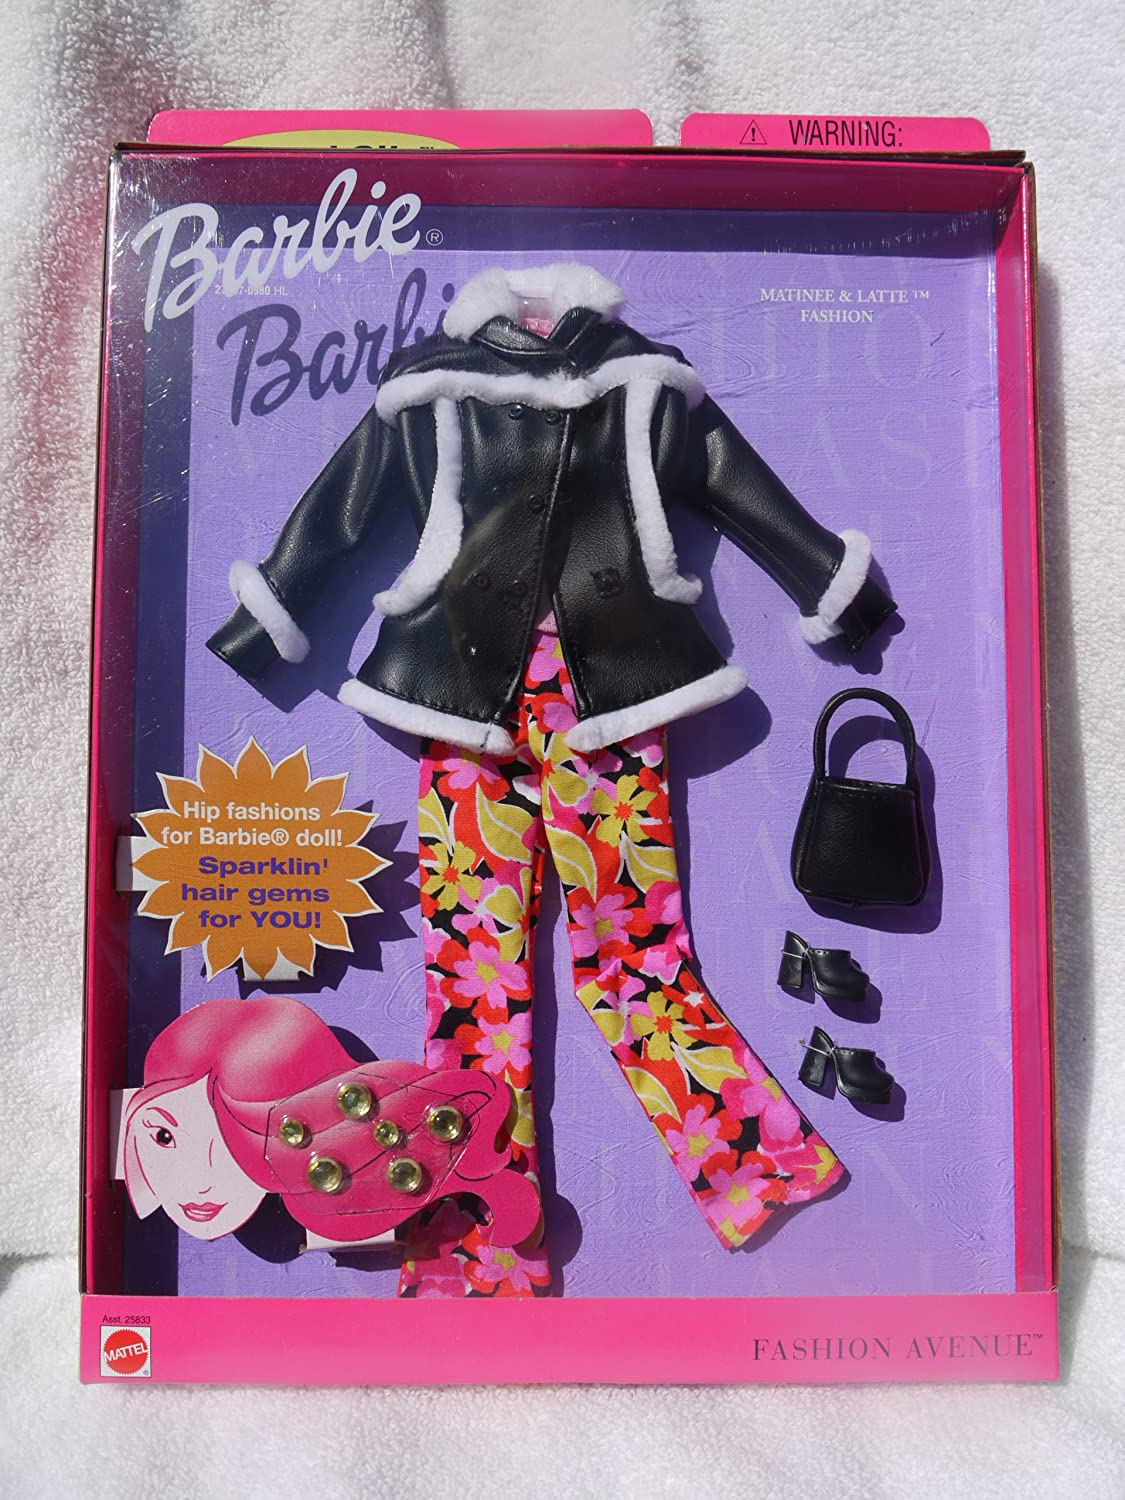 Barbie Trend City Matinee & Latte Fashion (2000) von Mattel